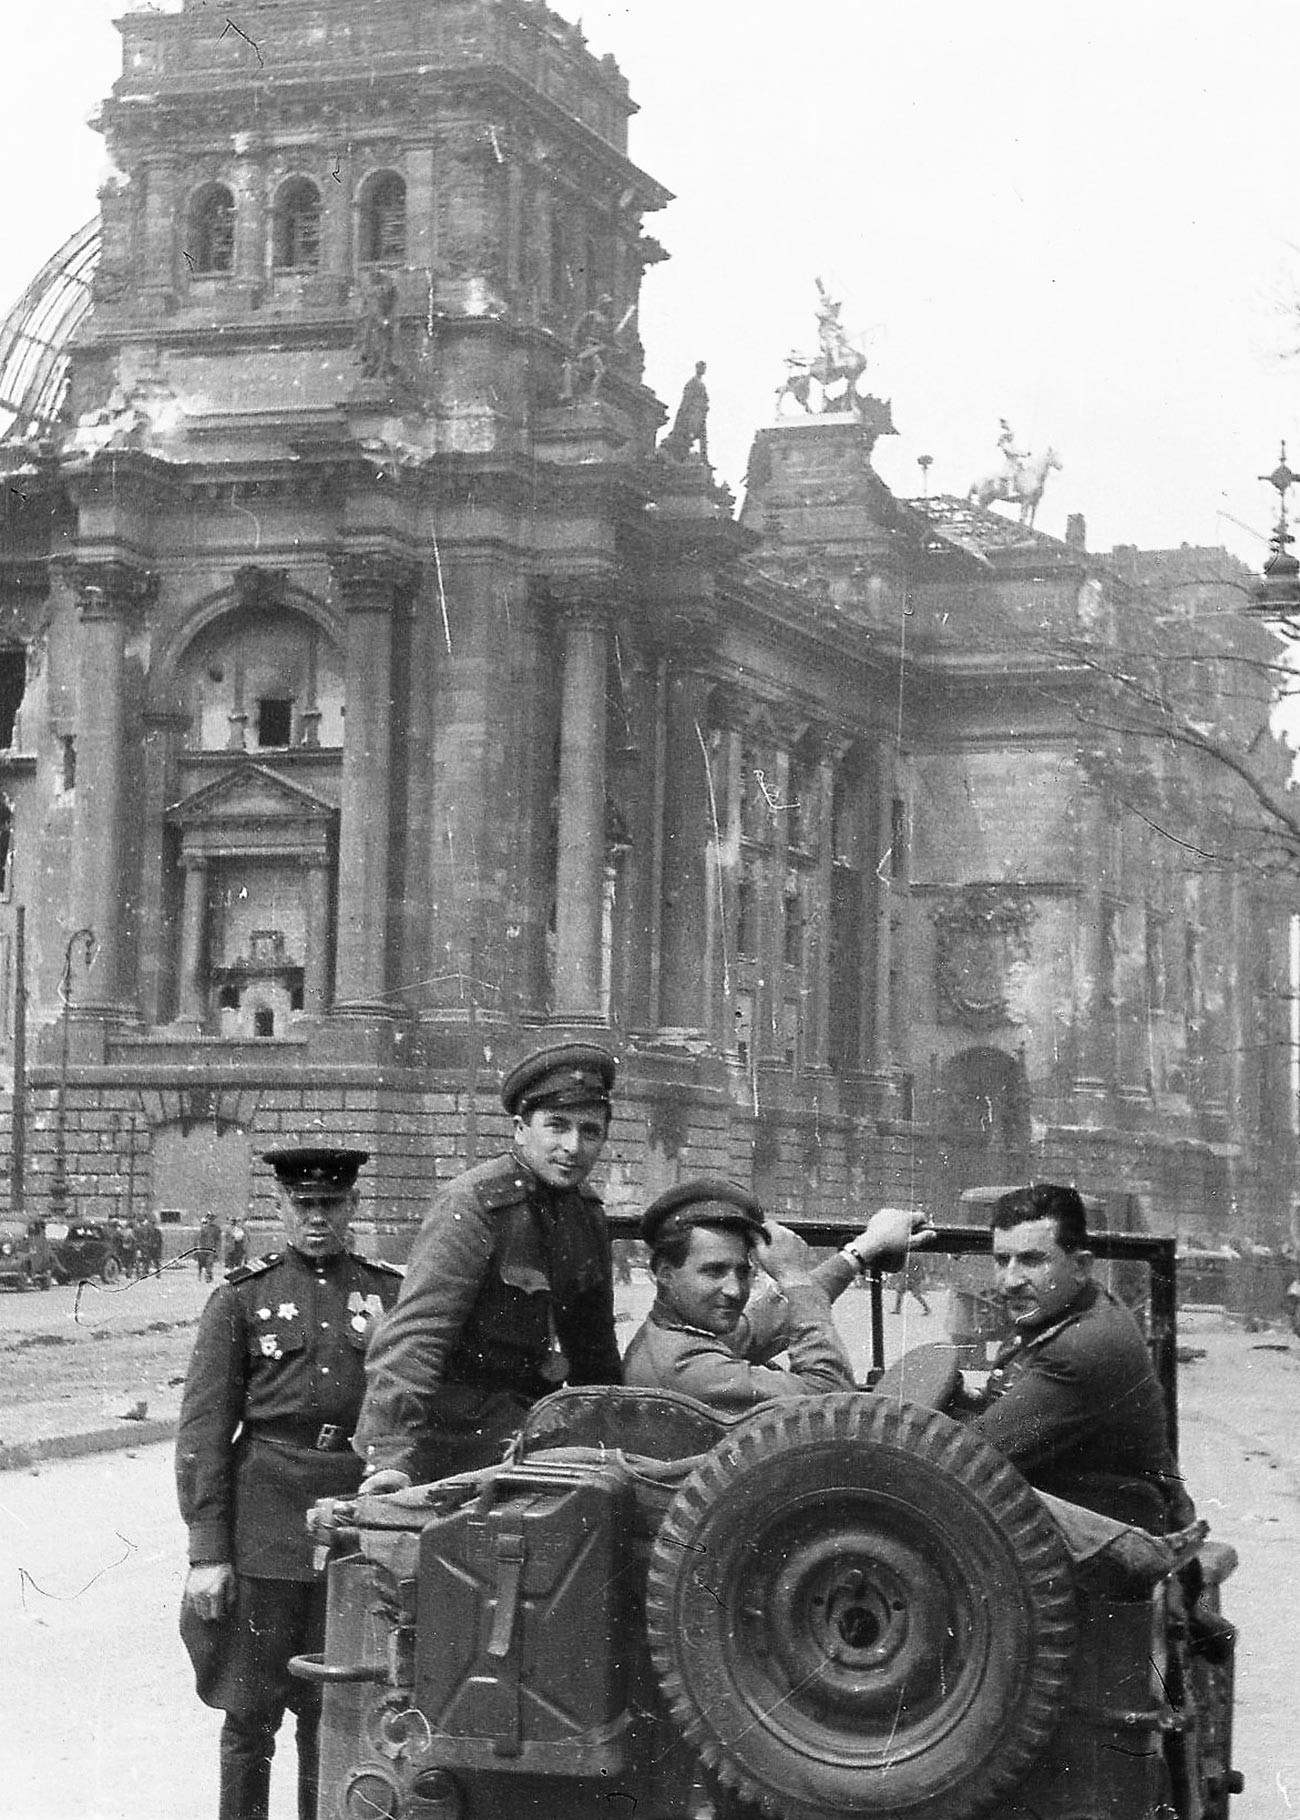 Ilya Arons. From left to right: General-Major Matvey Vayntrub, writer Konstantin Simonov, videographer Ilya Arons. At the building of the Reichstag, Berlin, 1945